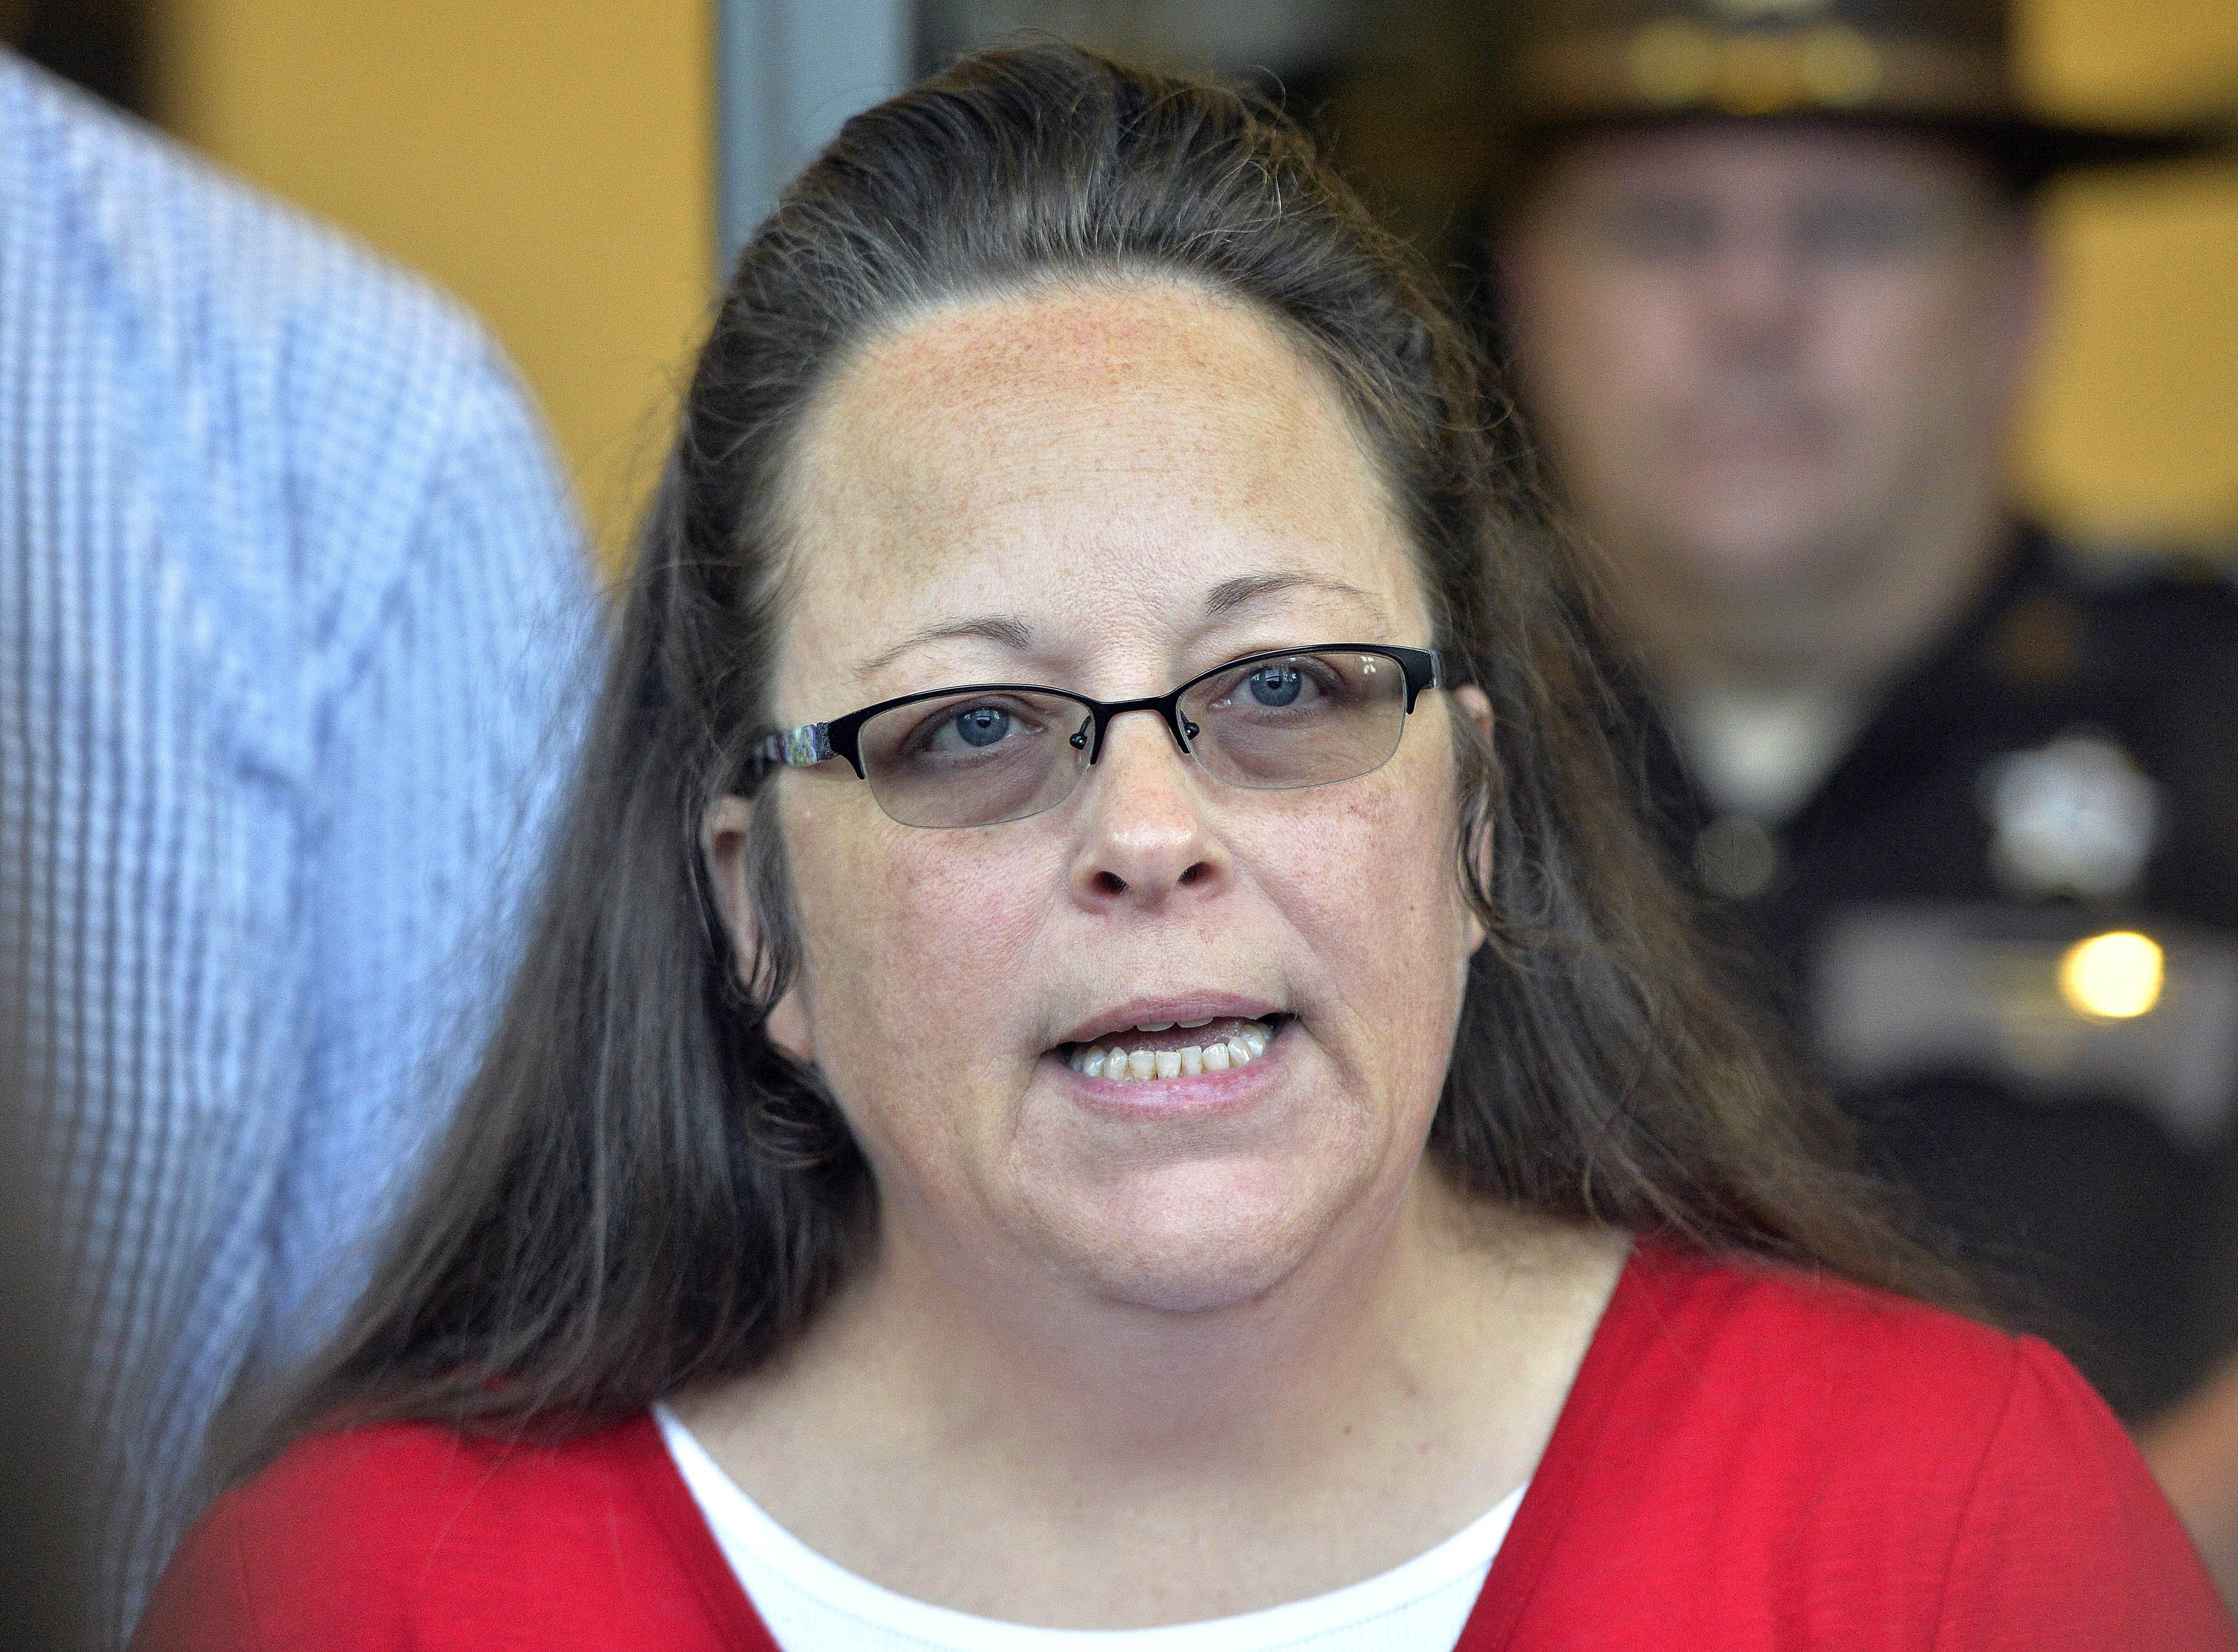 FILE - In this Sept. 14, 2015 file photo, Rowan County Clerk Kim Davis makes a statement to the media at the front door of the Rowan County Judicial Center in Morehead, Ky. On Friday, Oct. 2, 2015.